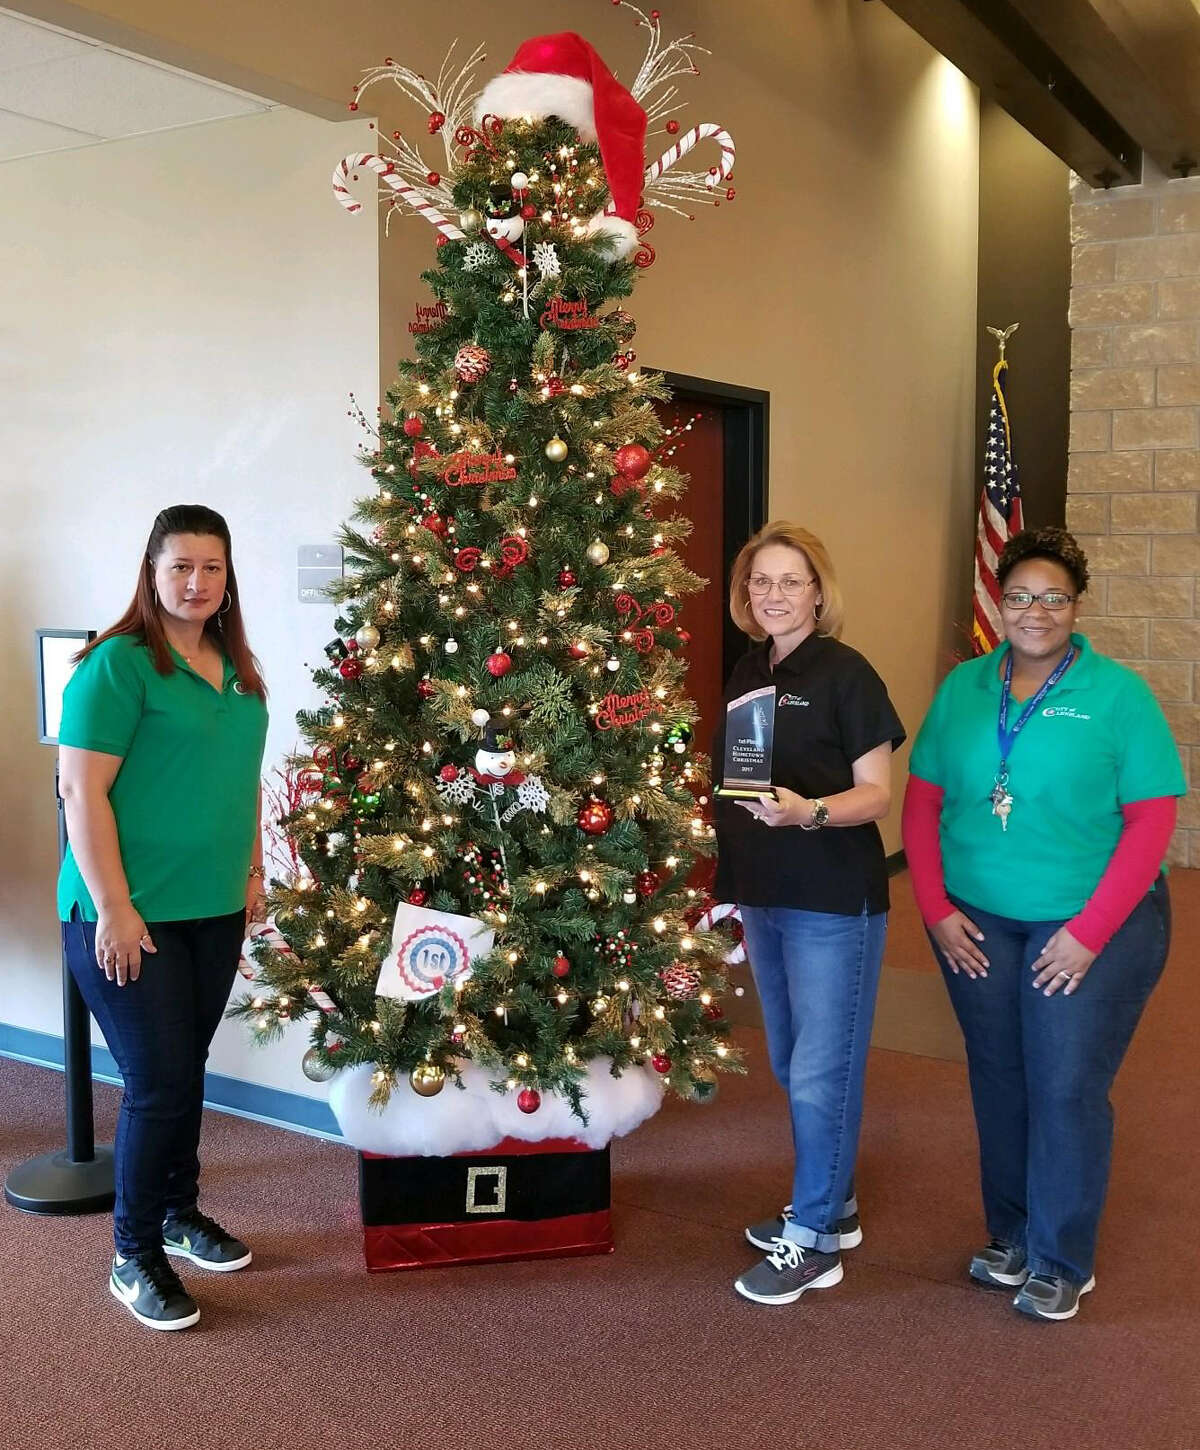 The judges picked Cleveland Civic Center to be the first-place winner in the Hometown Christmas Tree Contest. The trees adorned the civic center throughout the two-day Hometown Christmas event. Pictured are left to right are Marina Ybanez, Frieda Joyce and Ashleigh Broussard.